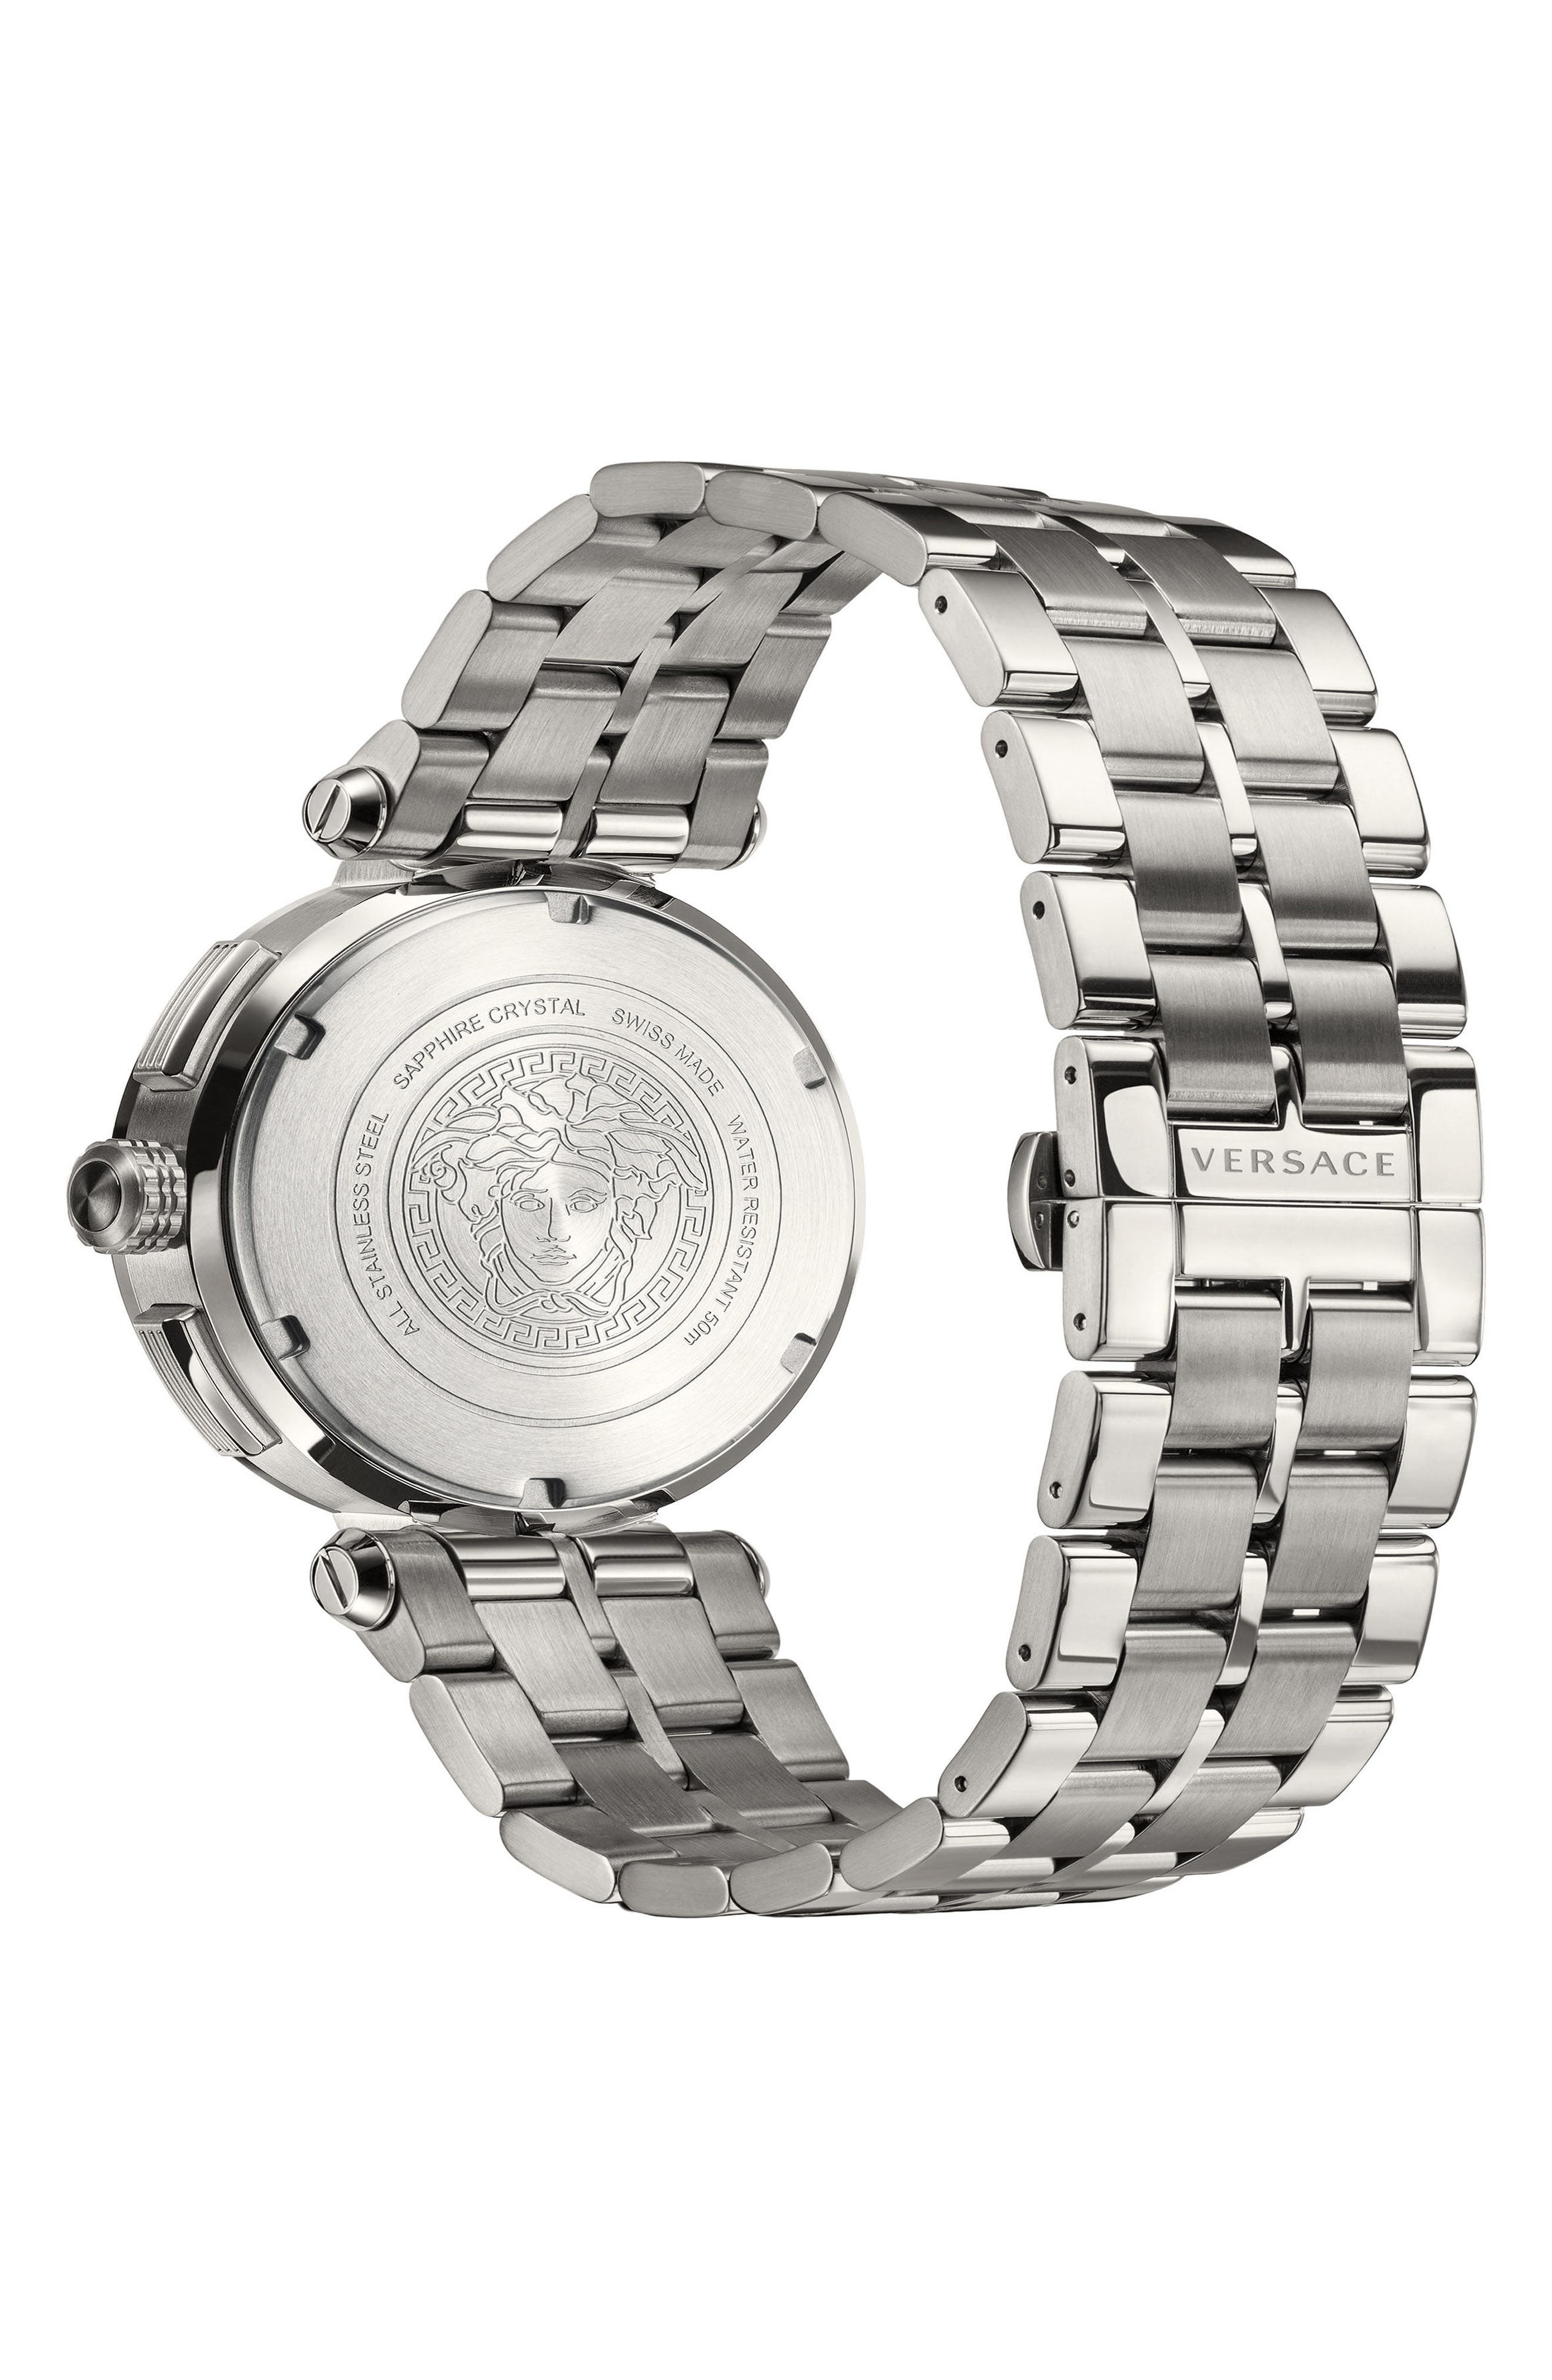 VERSACE, Aion Chronograph Bracelet Watch, 45mm, Alternate thumbnail 2, color, SILVER